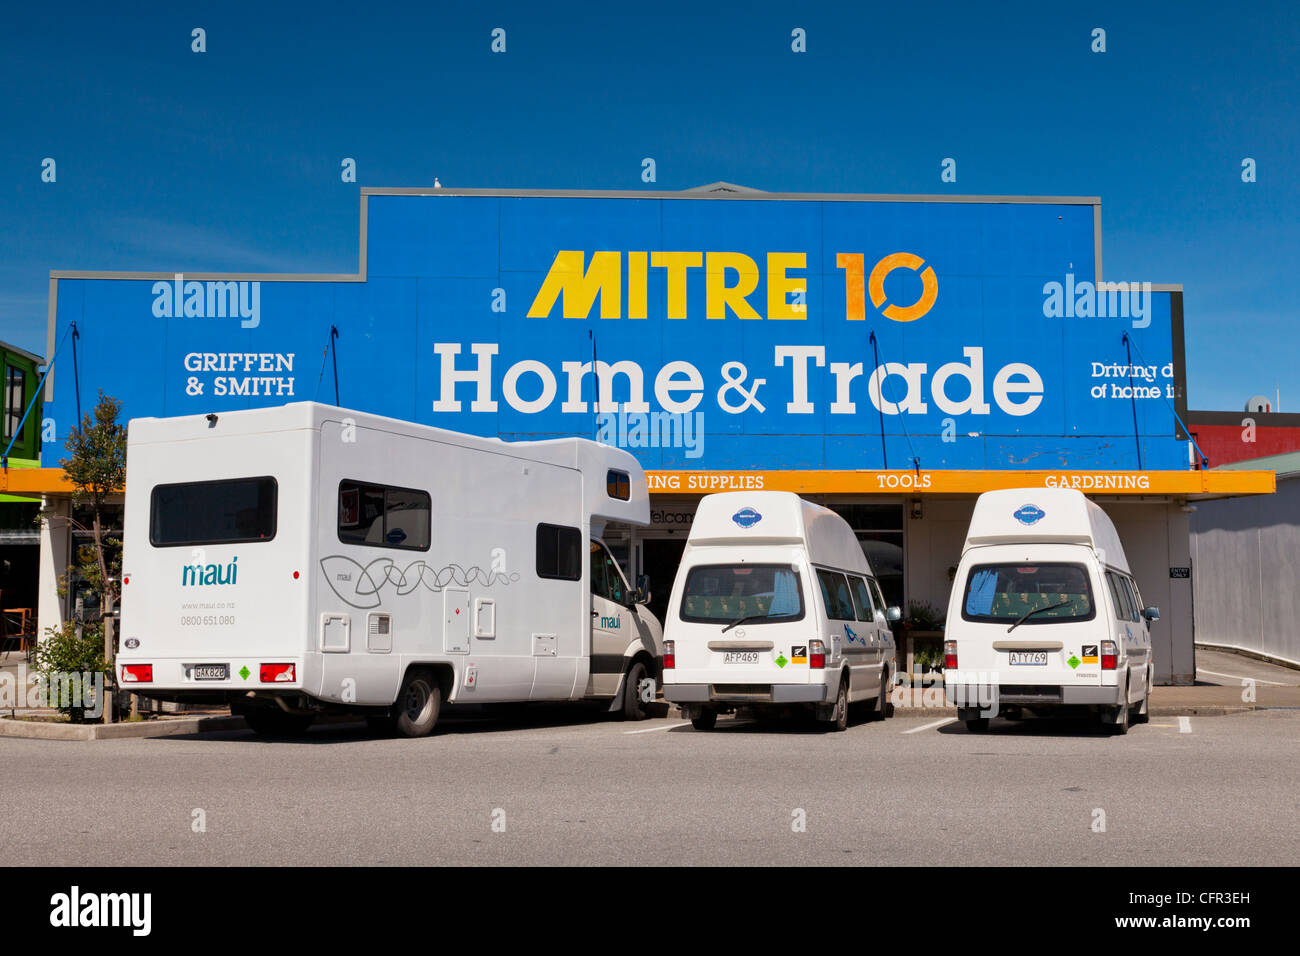 Three campervans parked outside Mitre 10 in Hokitika, West Coast, New Zealand. - Stock Image